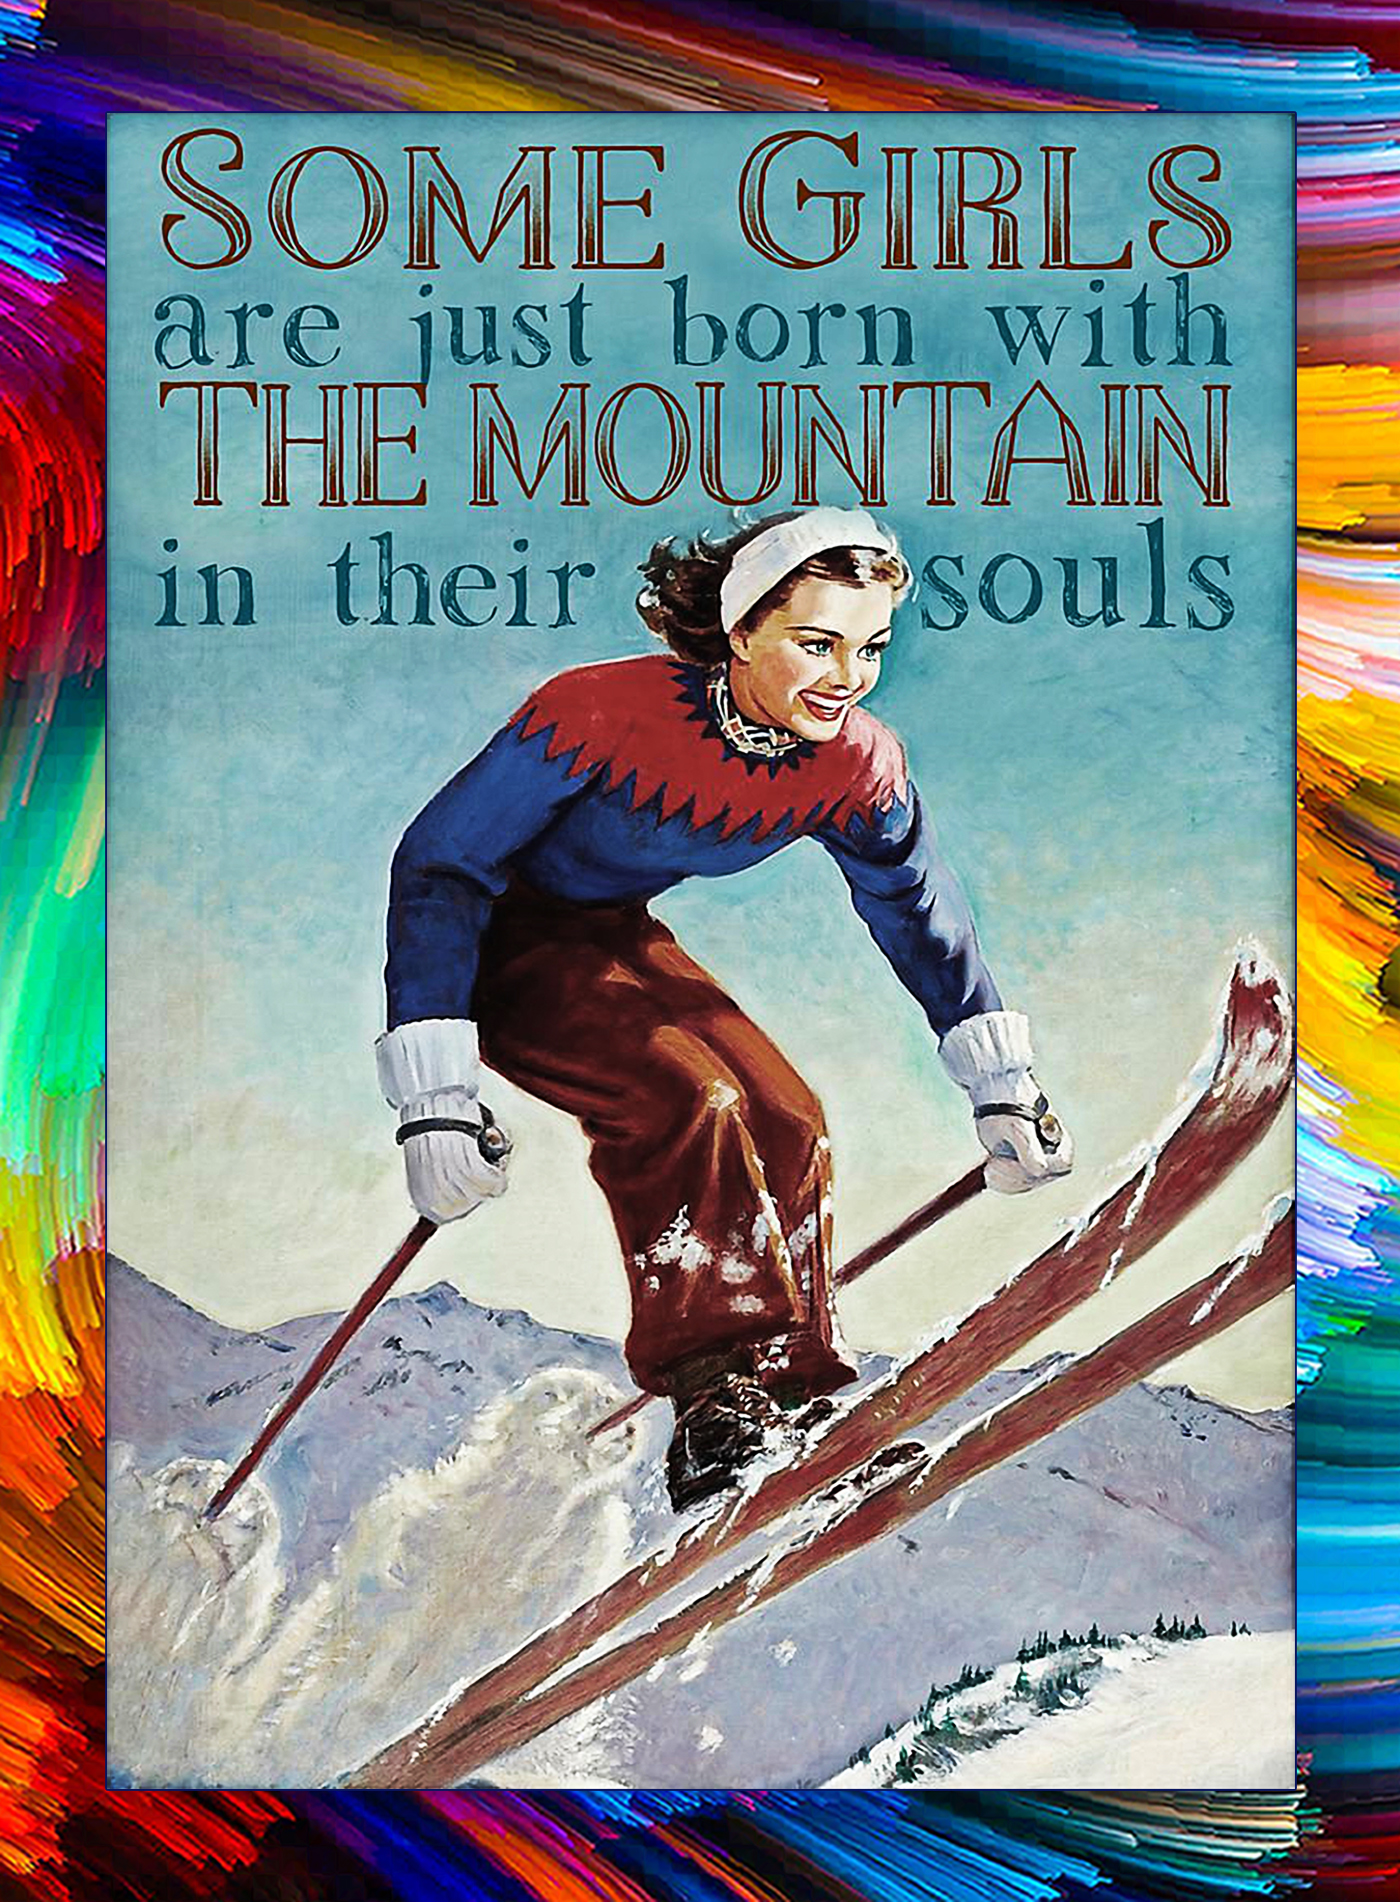 Skiing some girls are just born with the mountain poster - A1